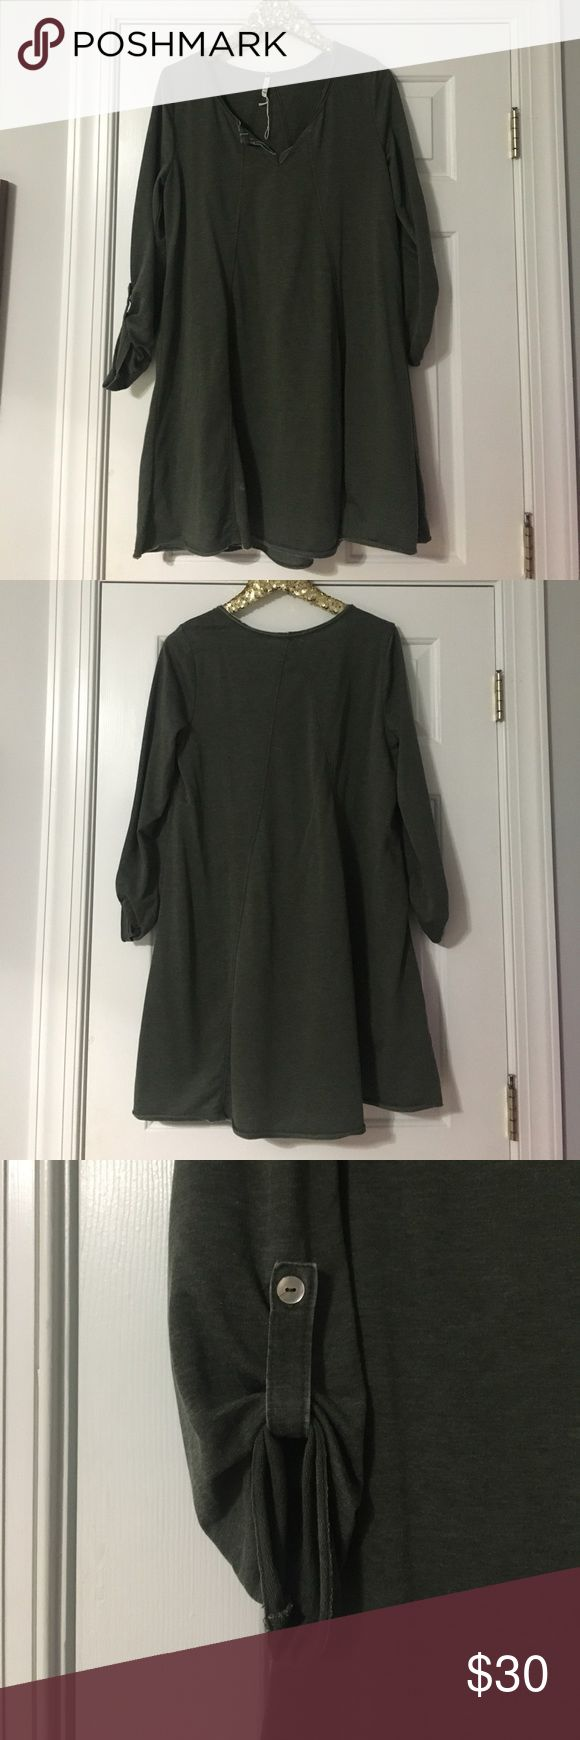 Hunter Green Sweatshirt Dress Brand New (tag unattached) Heather Hunter Sweatshirt dress! Never worn. Perfect for fall with boots! So comfy.  A line silhouette. z supply Dresses Long Sleeve